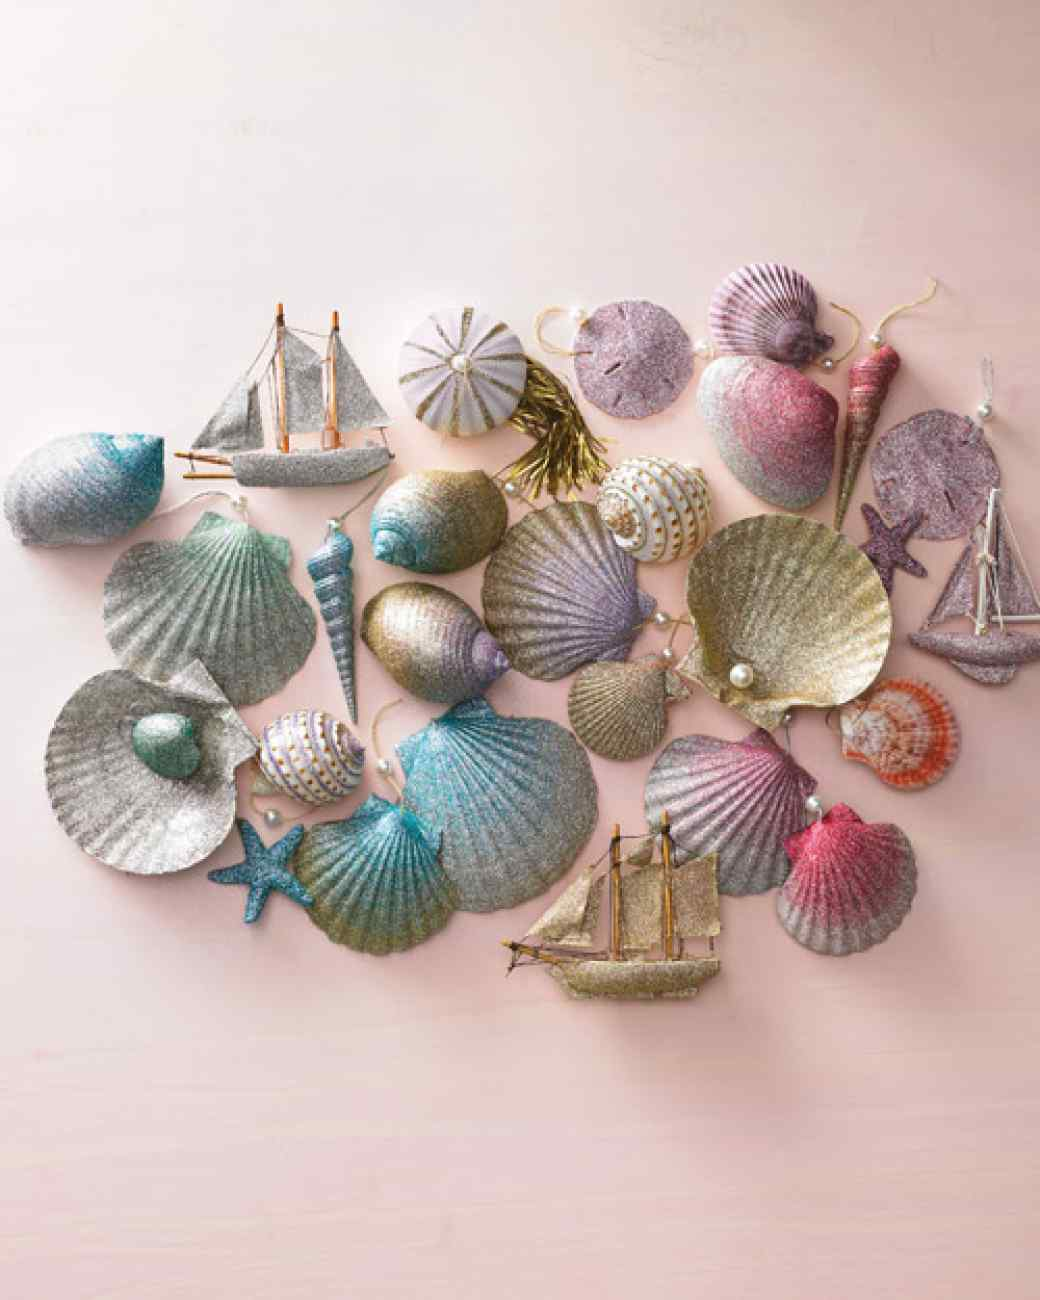 Ombre glittered seashell tree ornaments